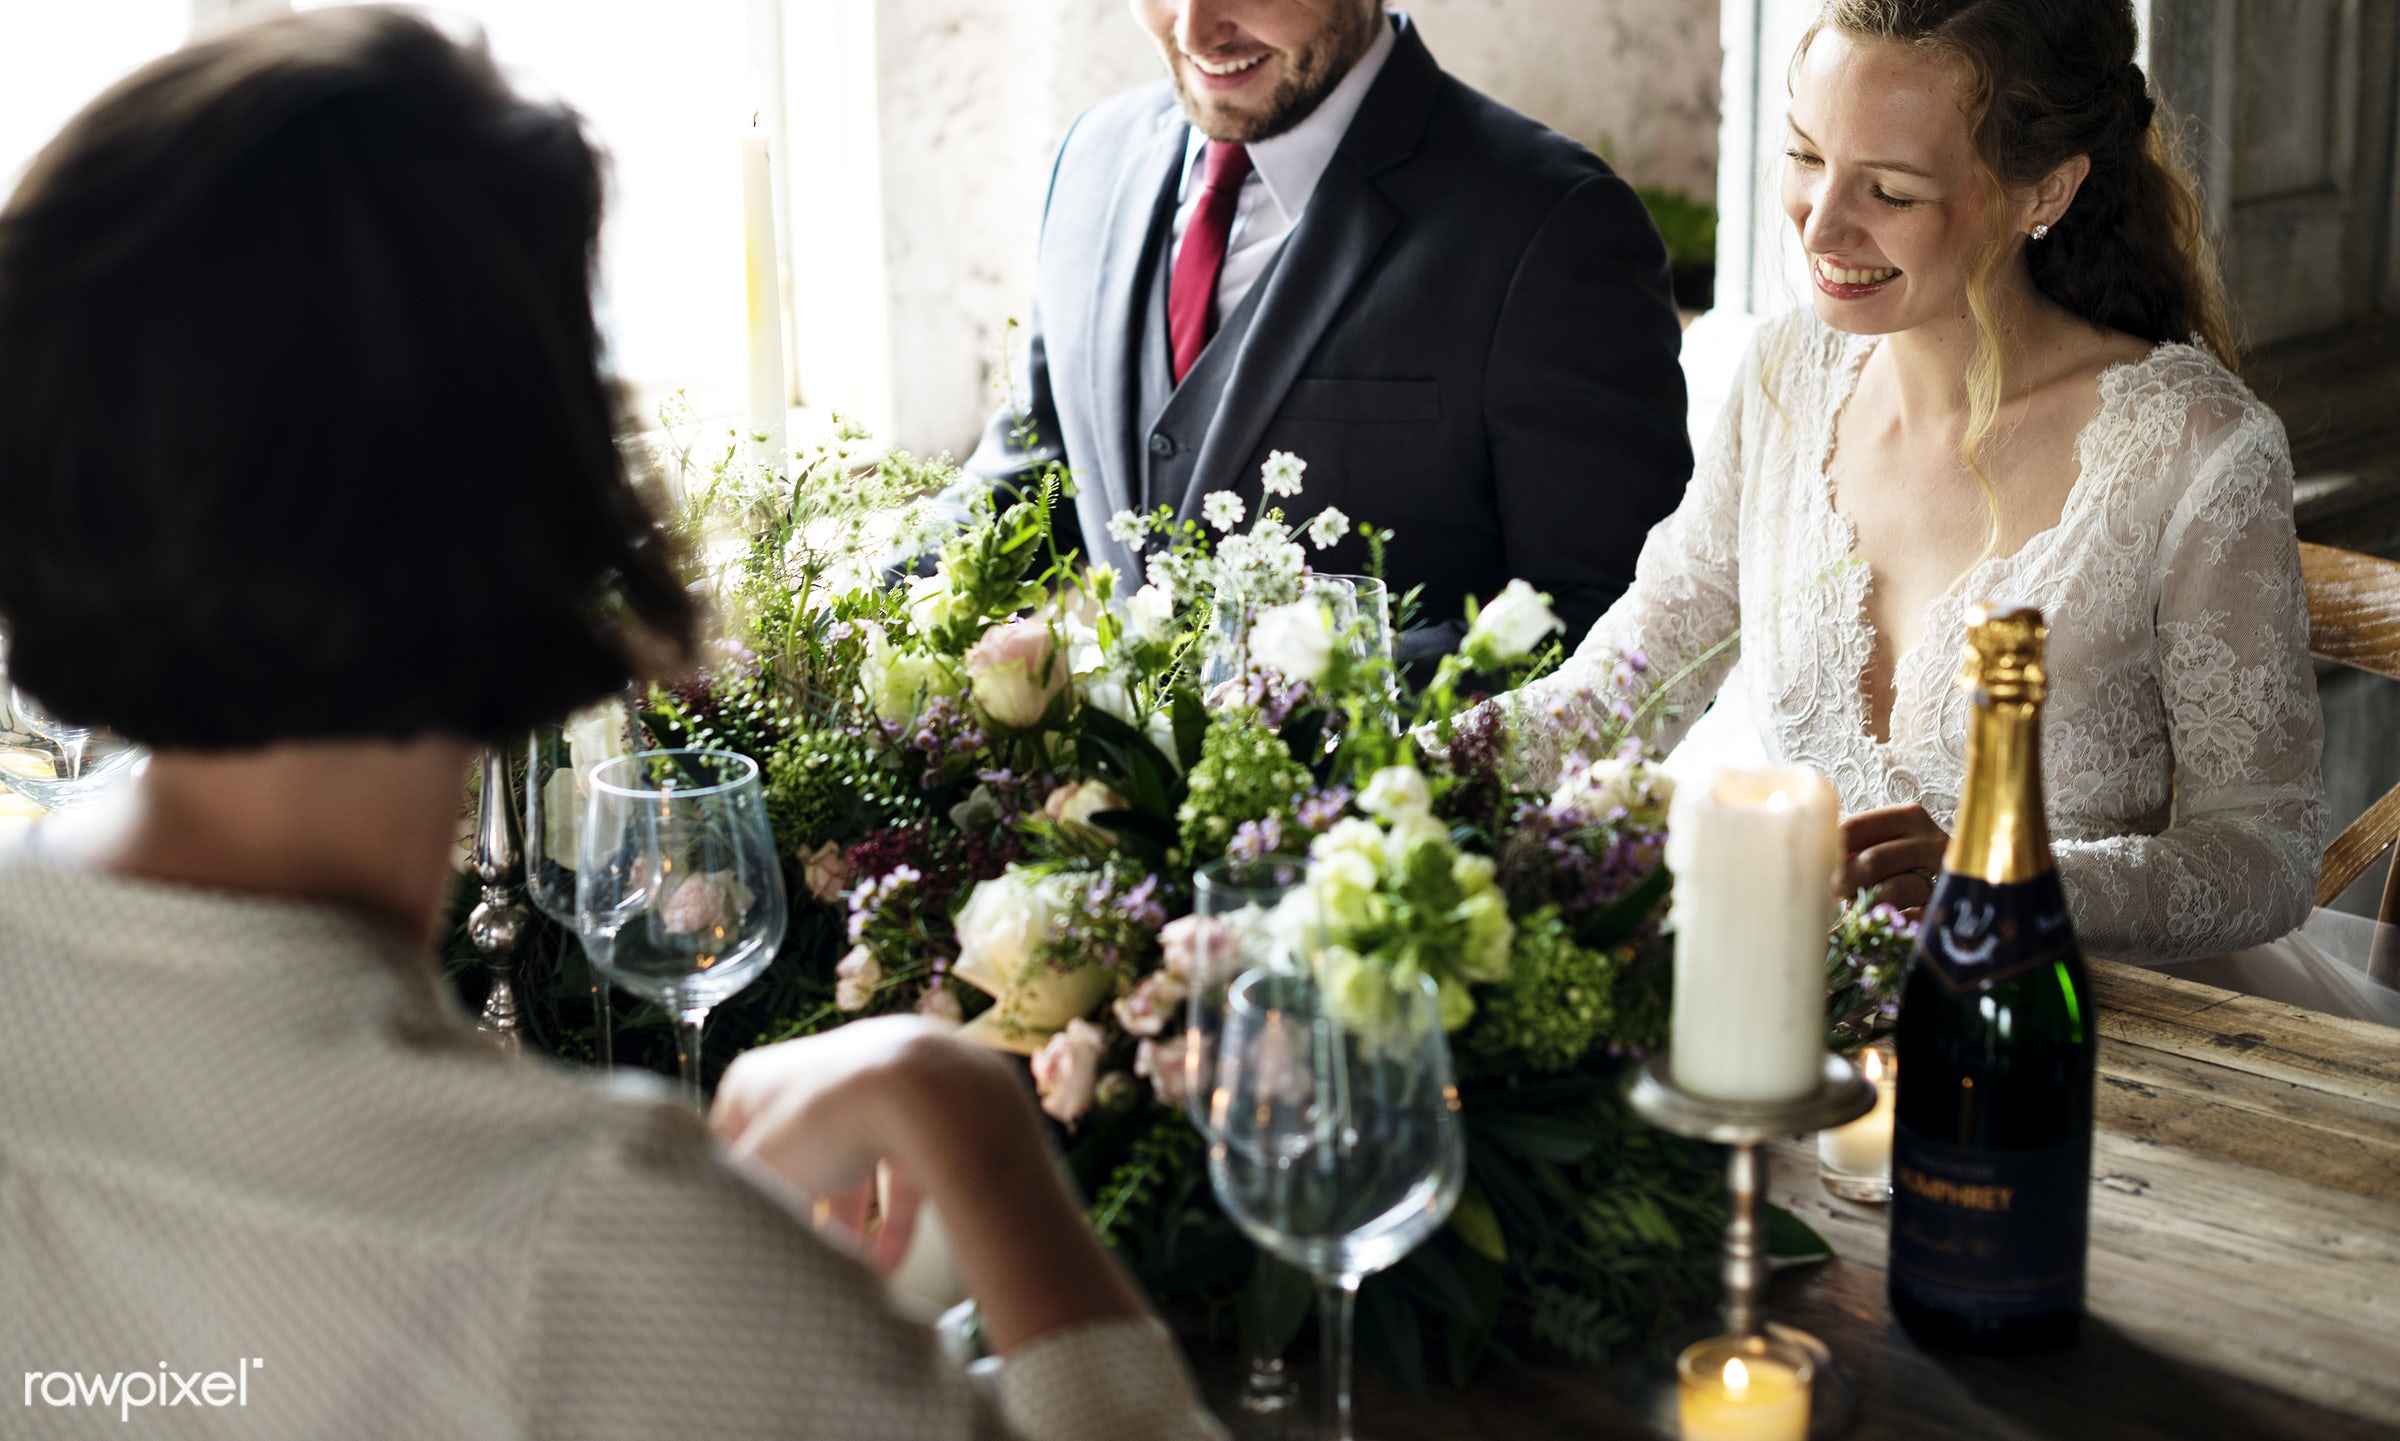 expression, person, people, together, love, friends, married, woman, gather, drink, cheeses, flowers, wine, cake, happiness...